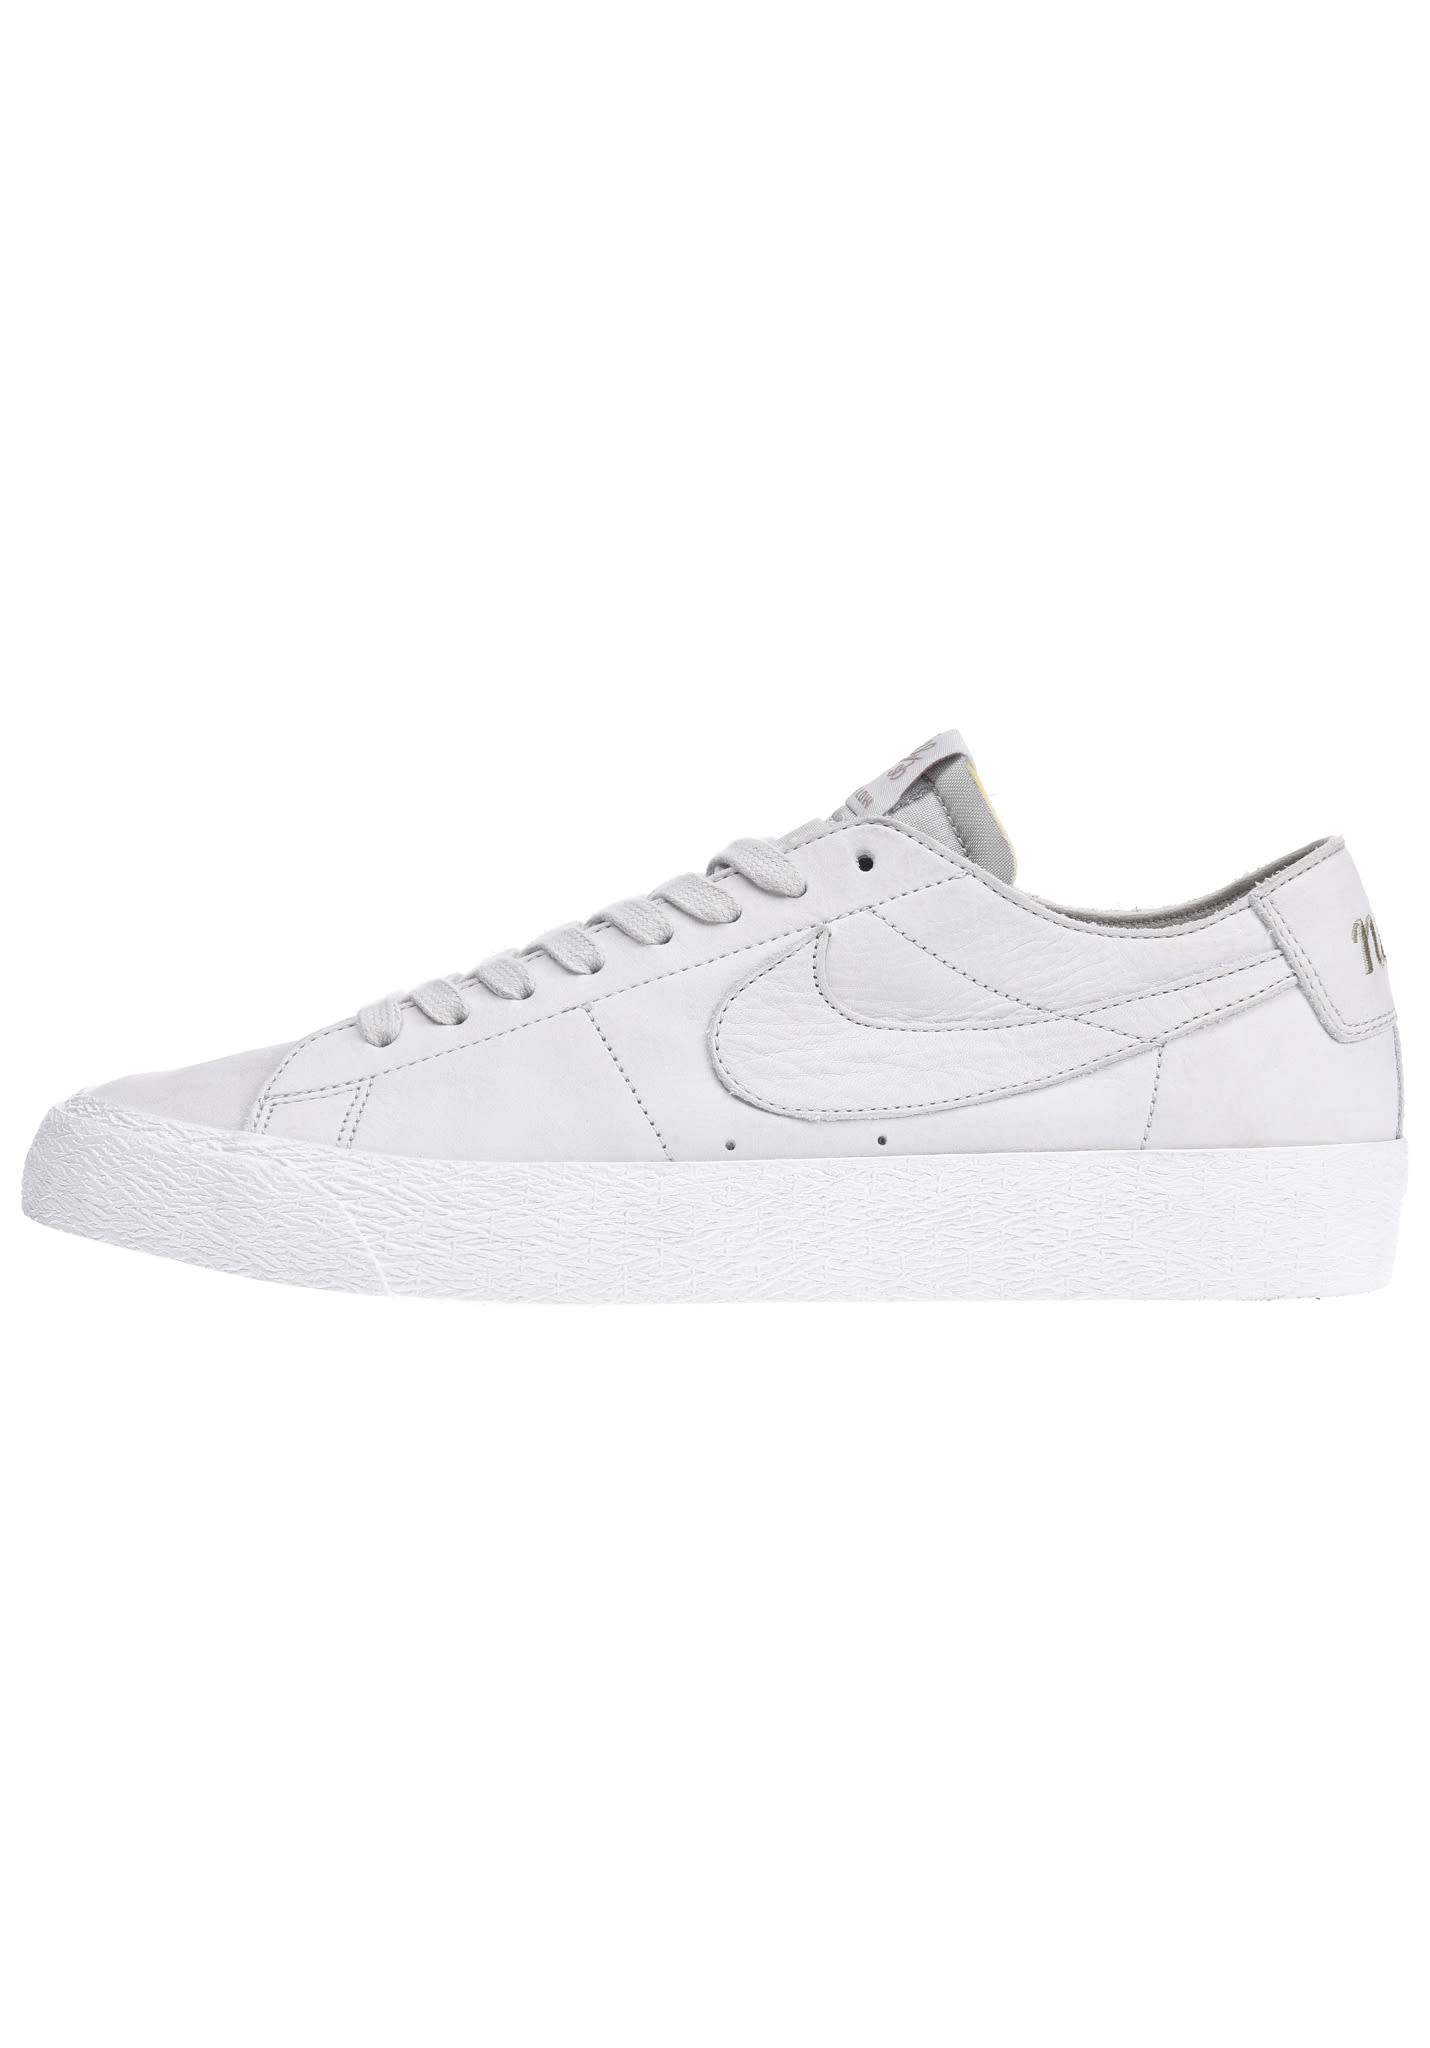 big sale preview of hot sale online NIKE SB Zoom Blazer Low Decon - Sneakers for Men - Grey